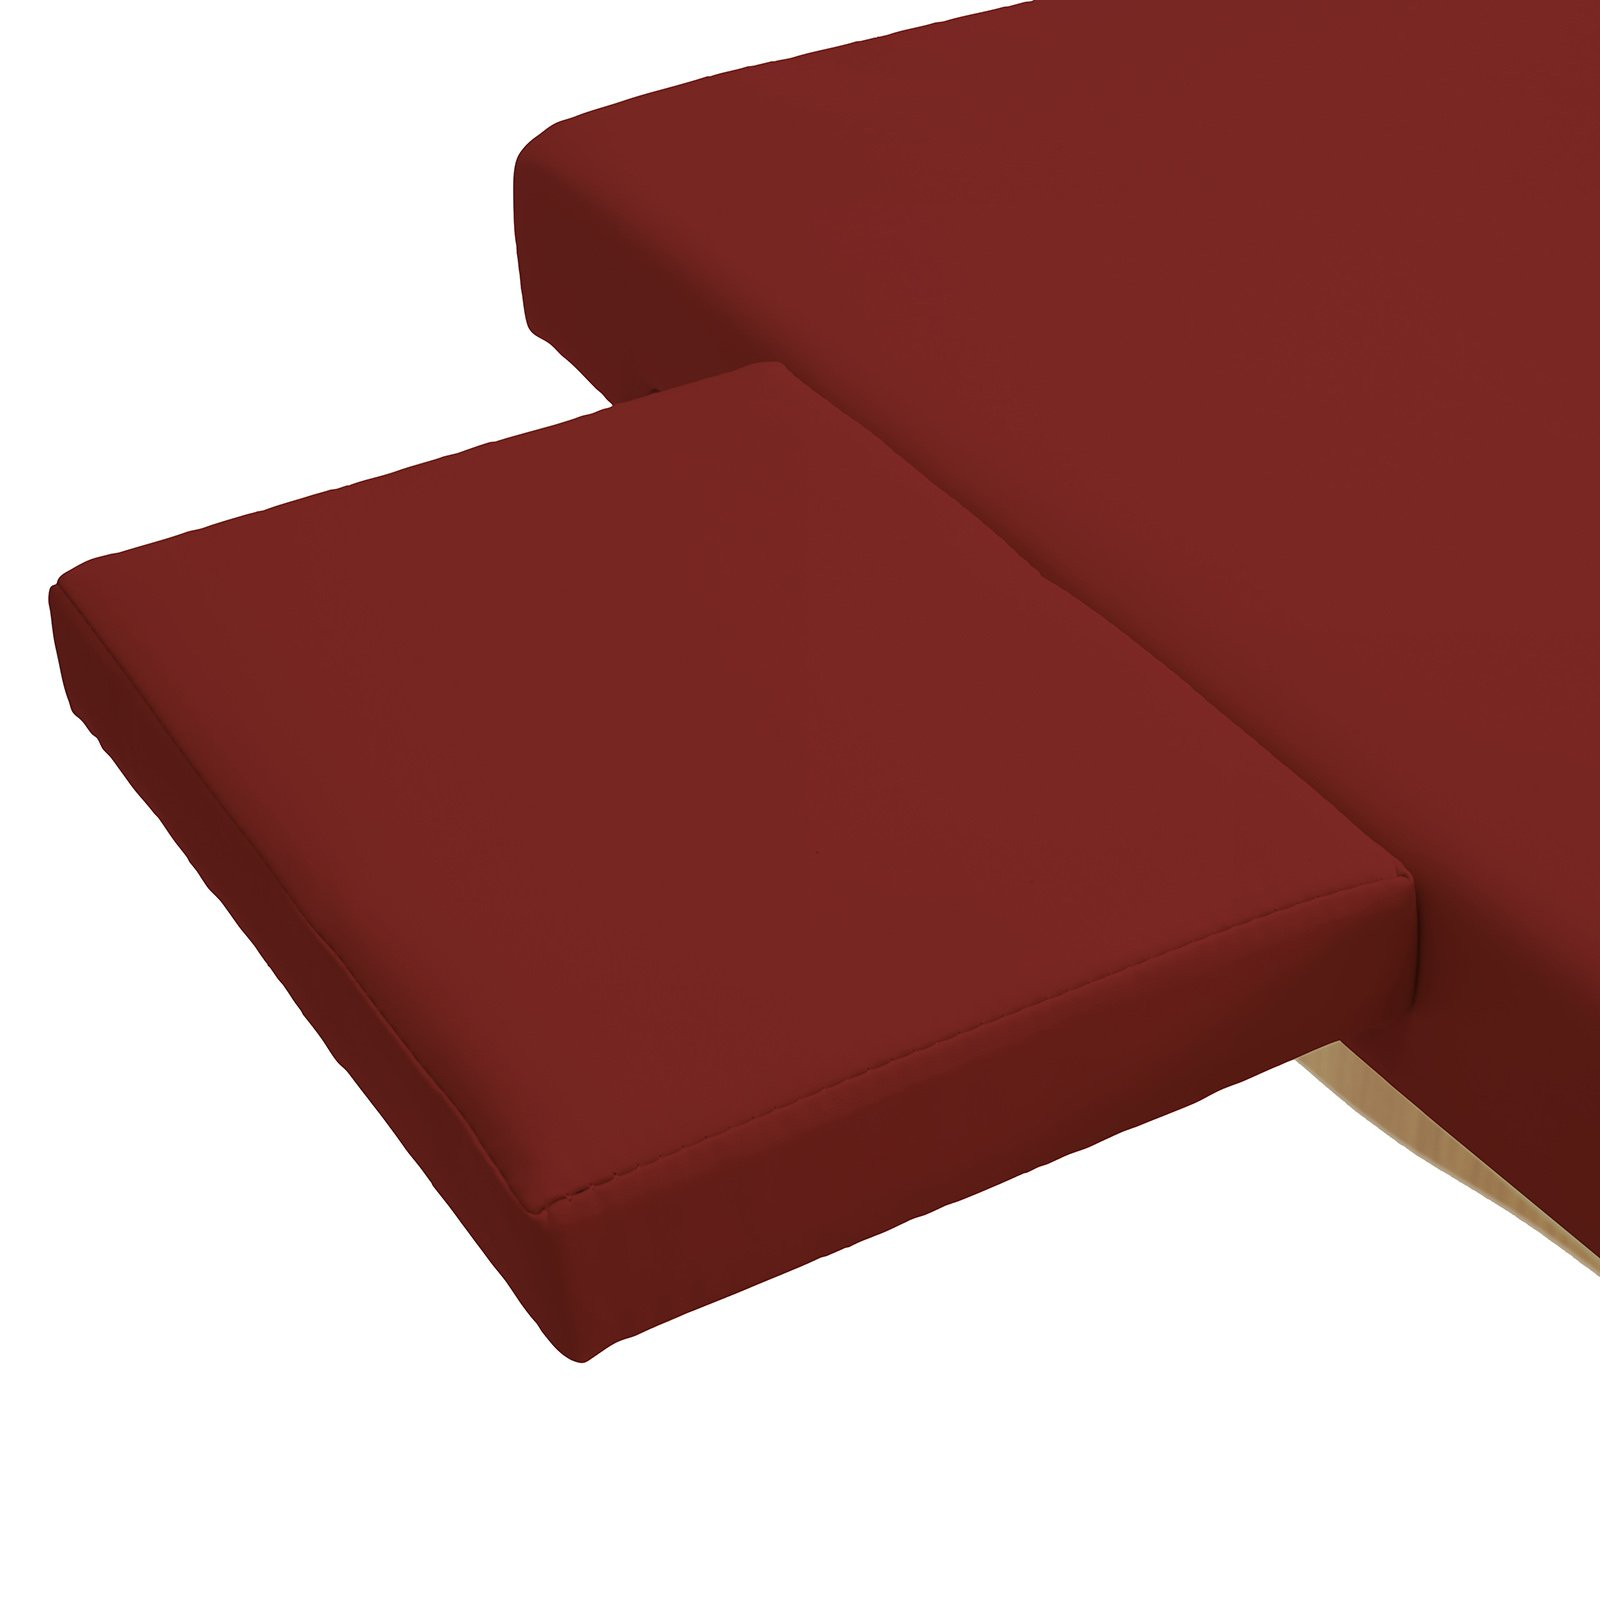 Saloniture Portable Physical Therapy Massage Table - Low to Ground Stretching Treatment Mat Platform - Burgundy by Saloniture (Image #4)